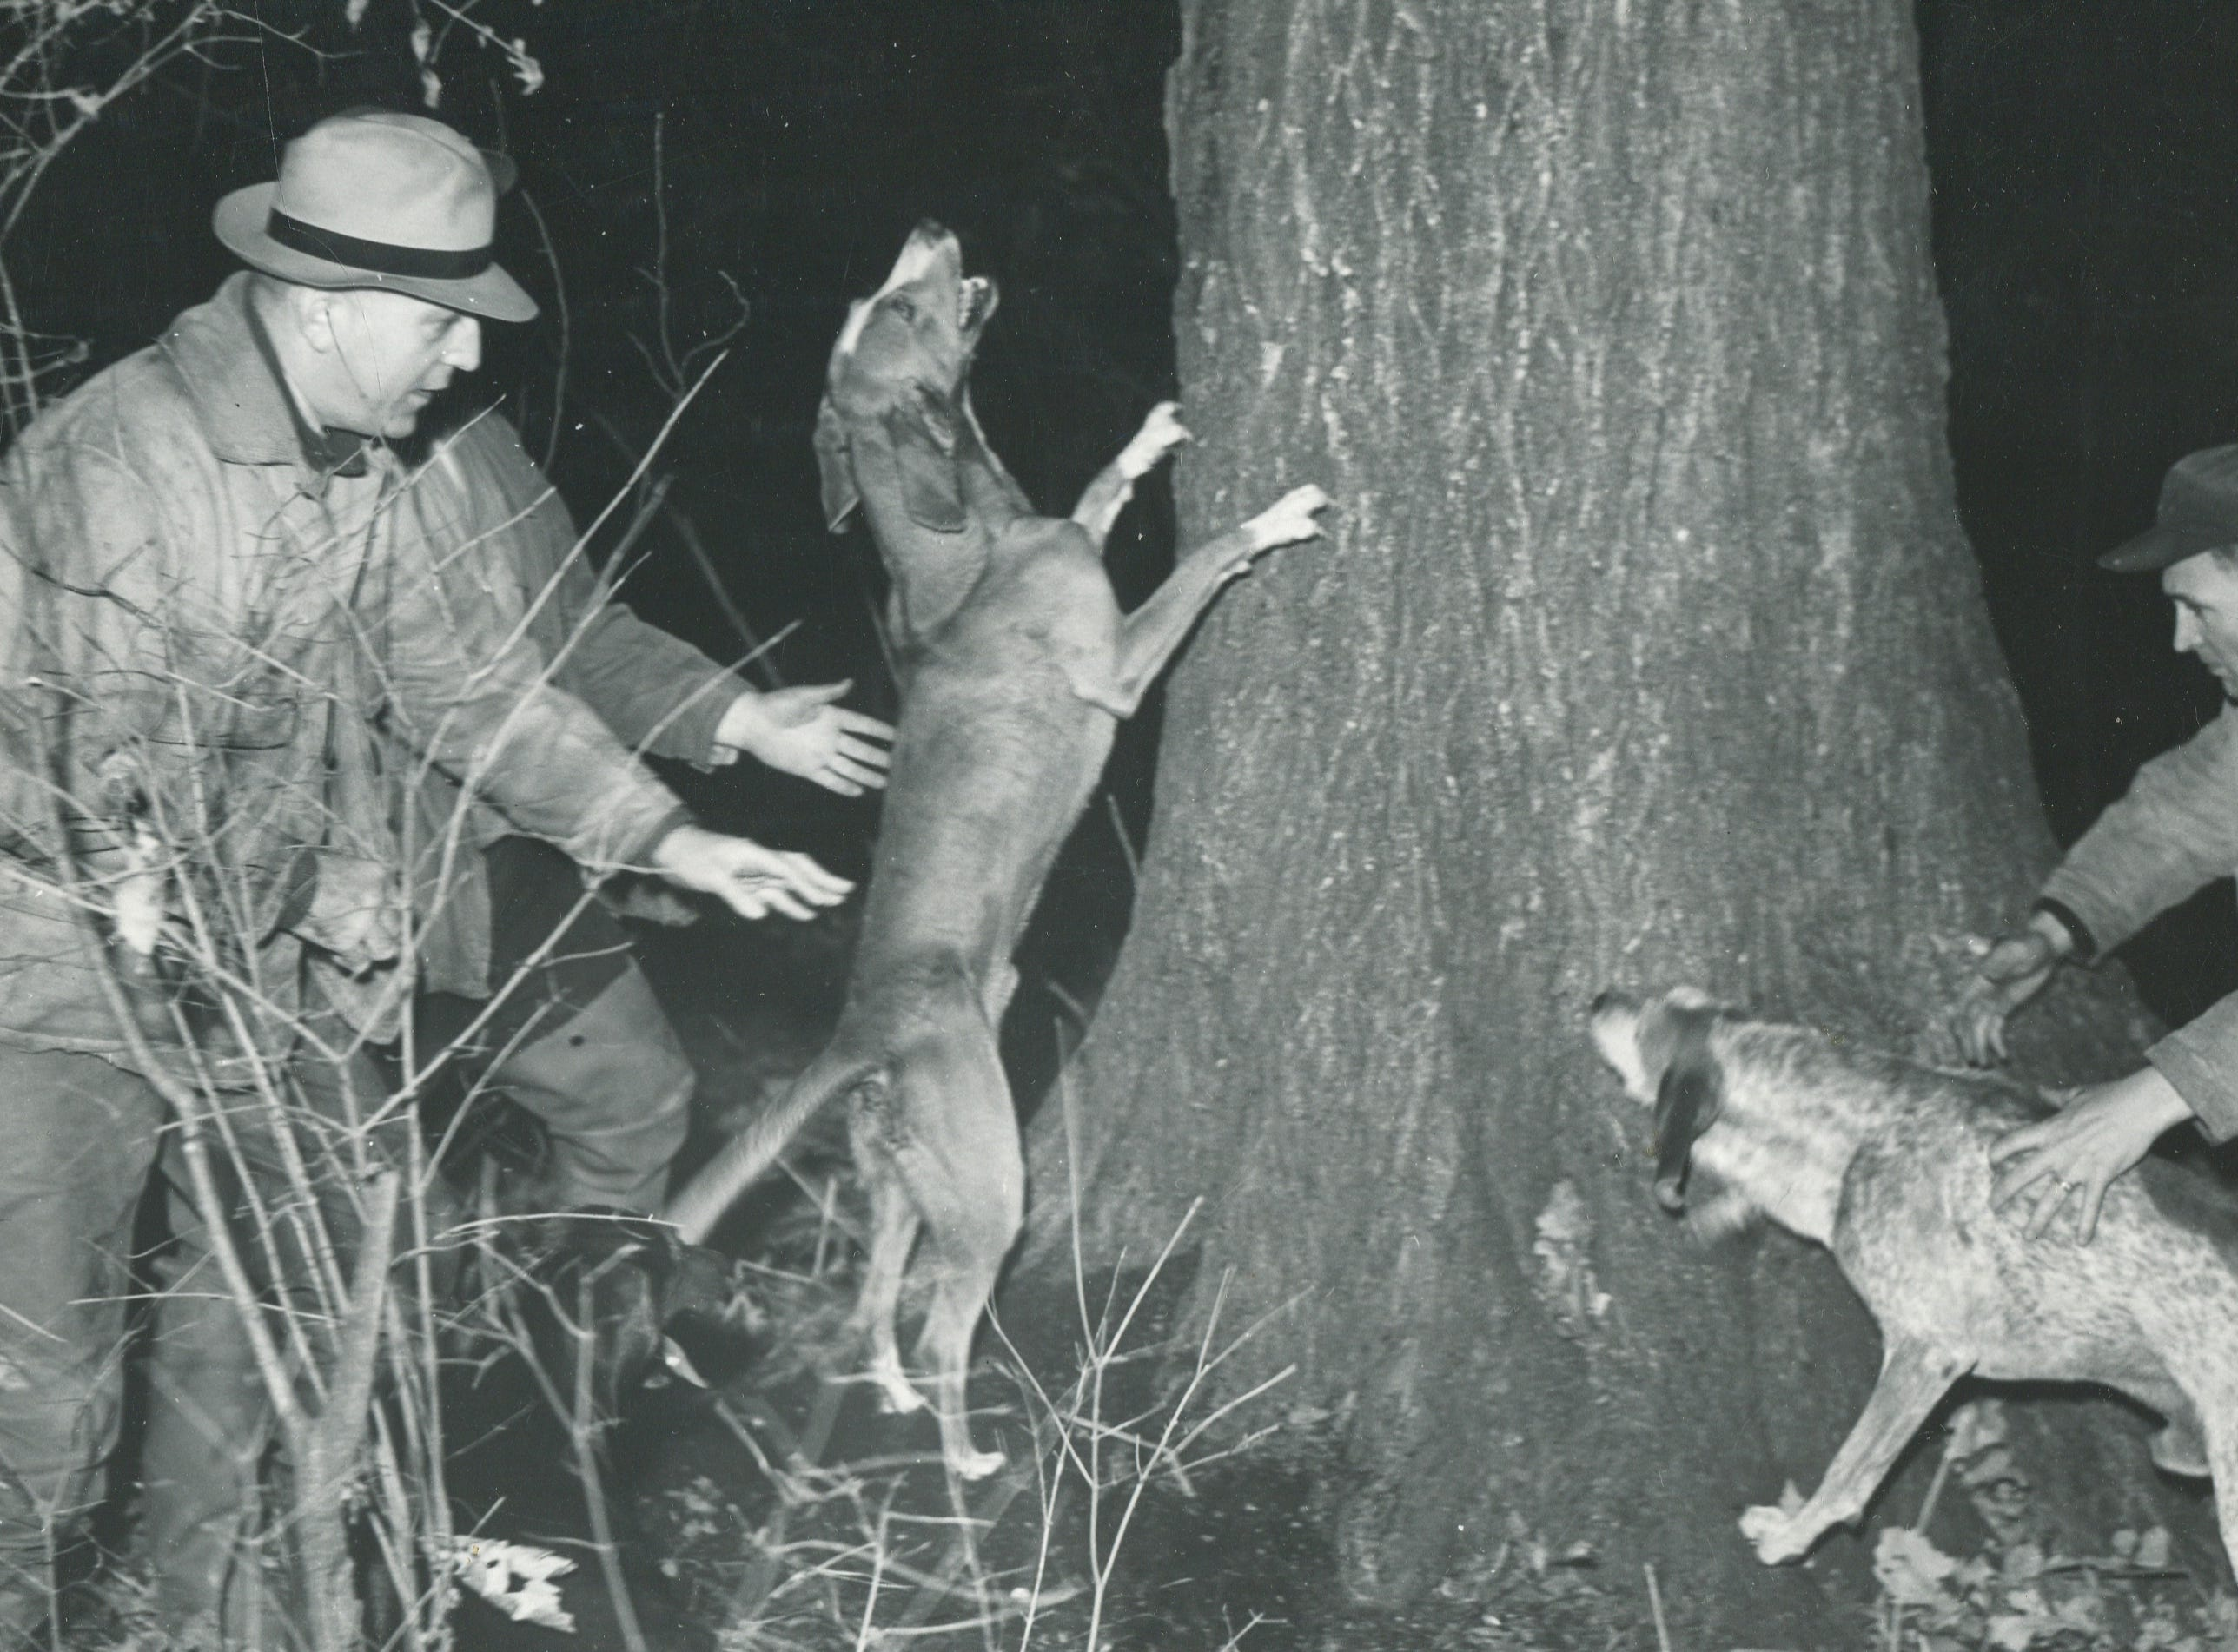 Dogs tree a raccoon for hunters in Michigan in November 1944.